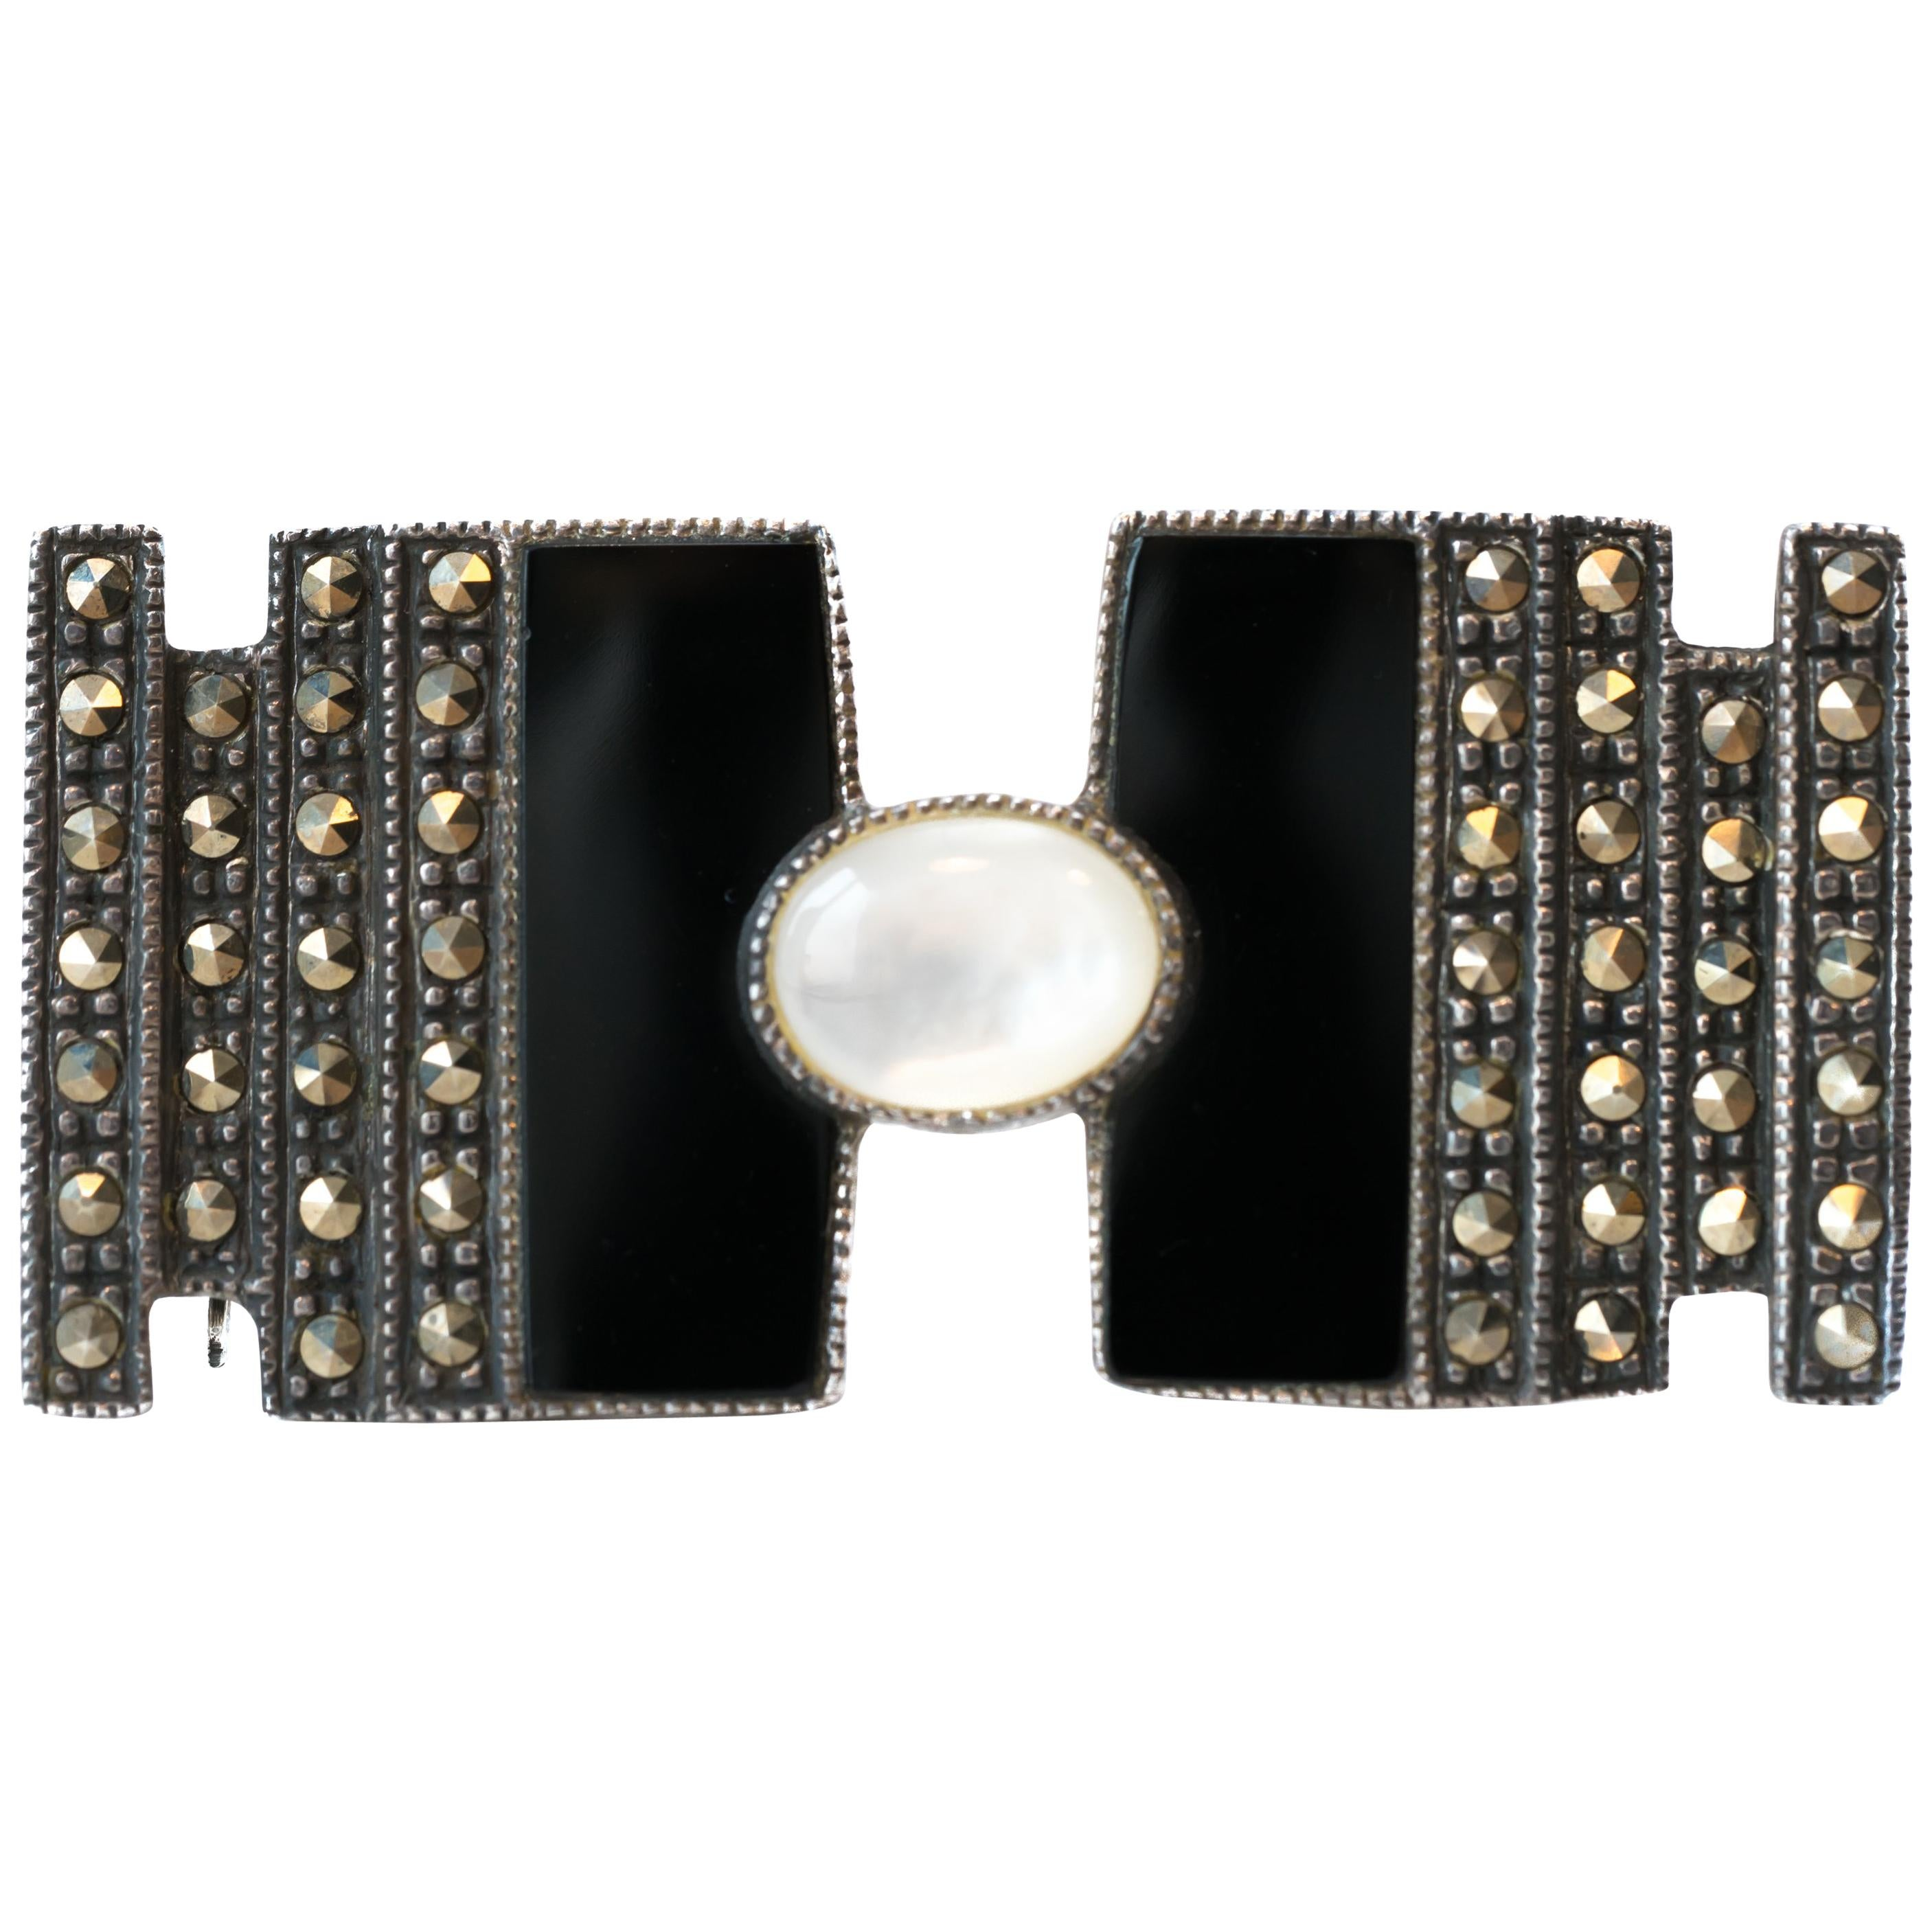 Onyx, Marcasite and Mother of Pearl Sterling Silver Brooch